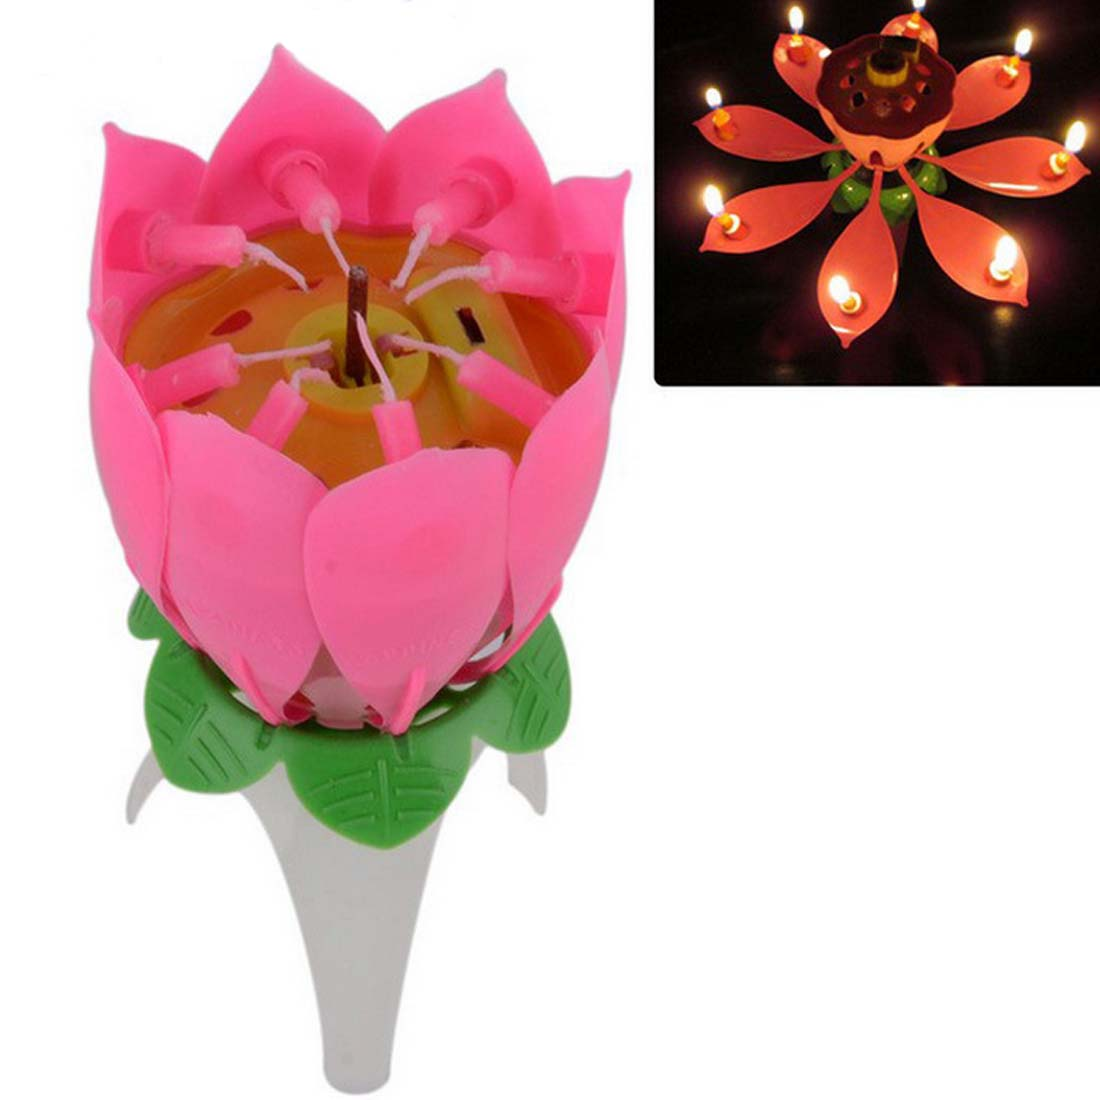 Popular Musical Flower Candle Buy Cheap Musical Flower Candle lots from China